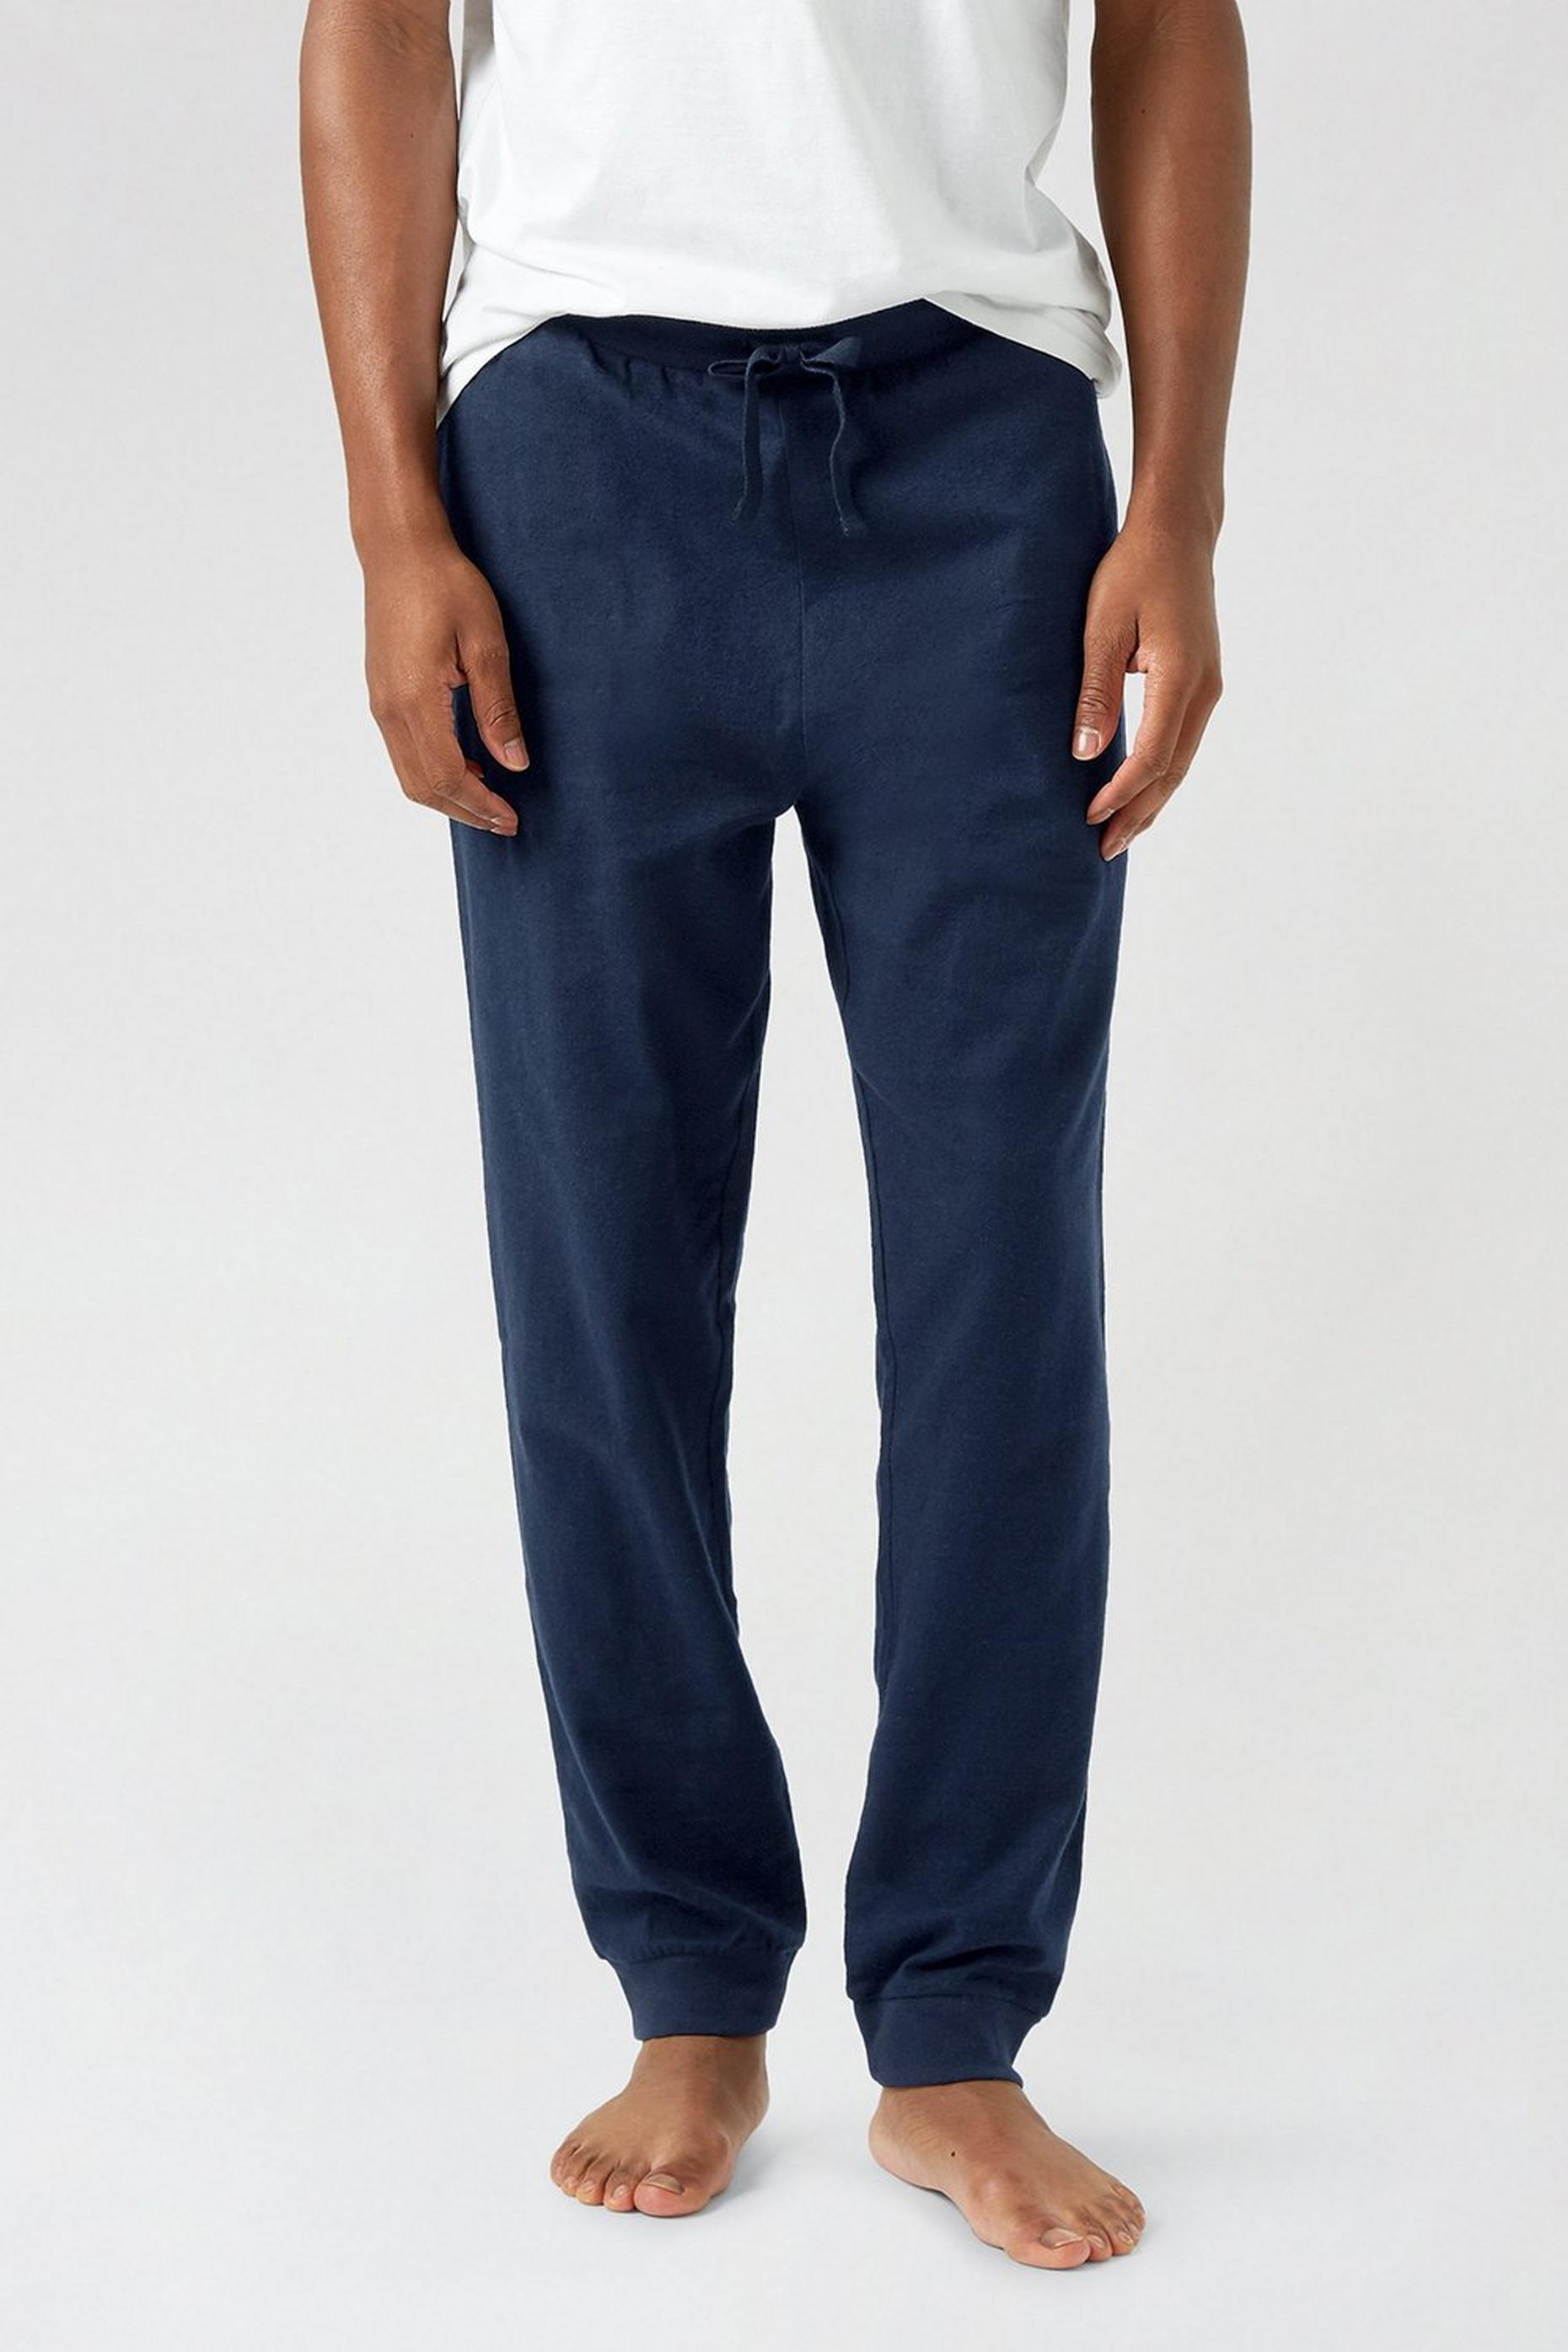 Navy Cuffed Check Pyjama Bottoms